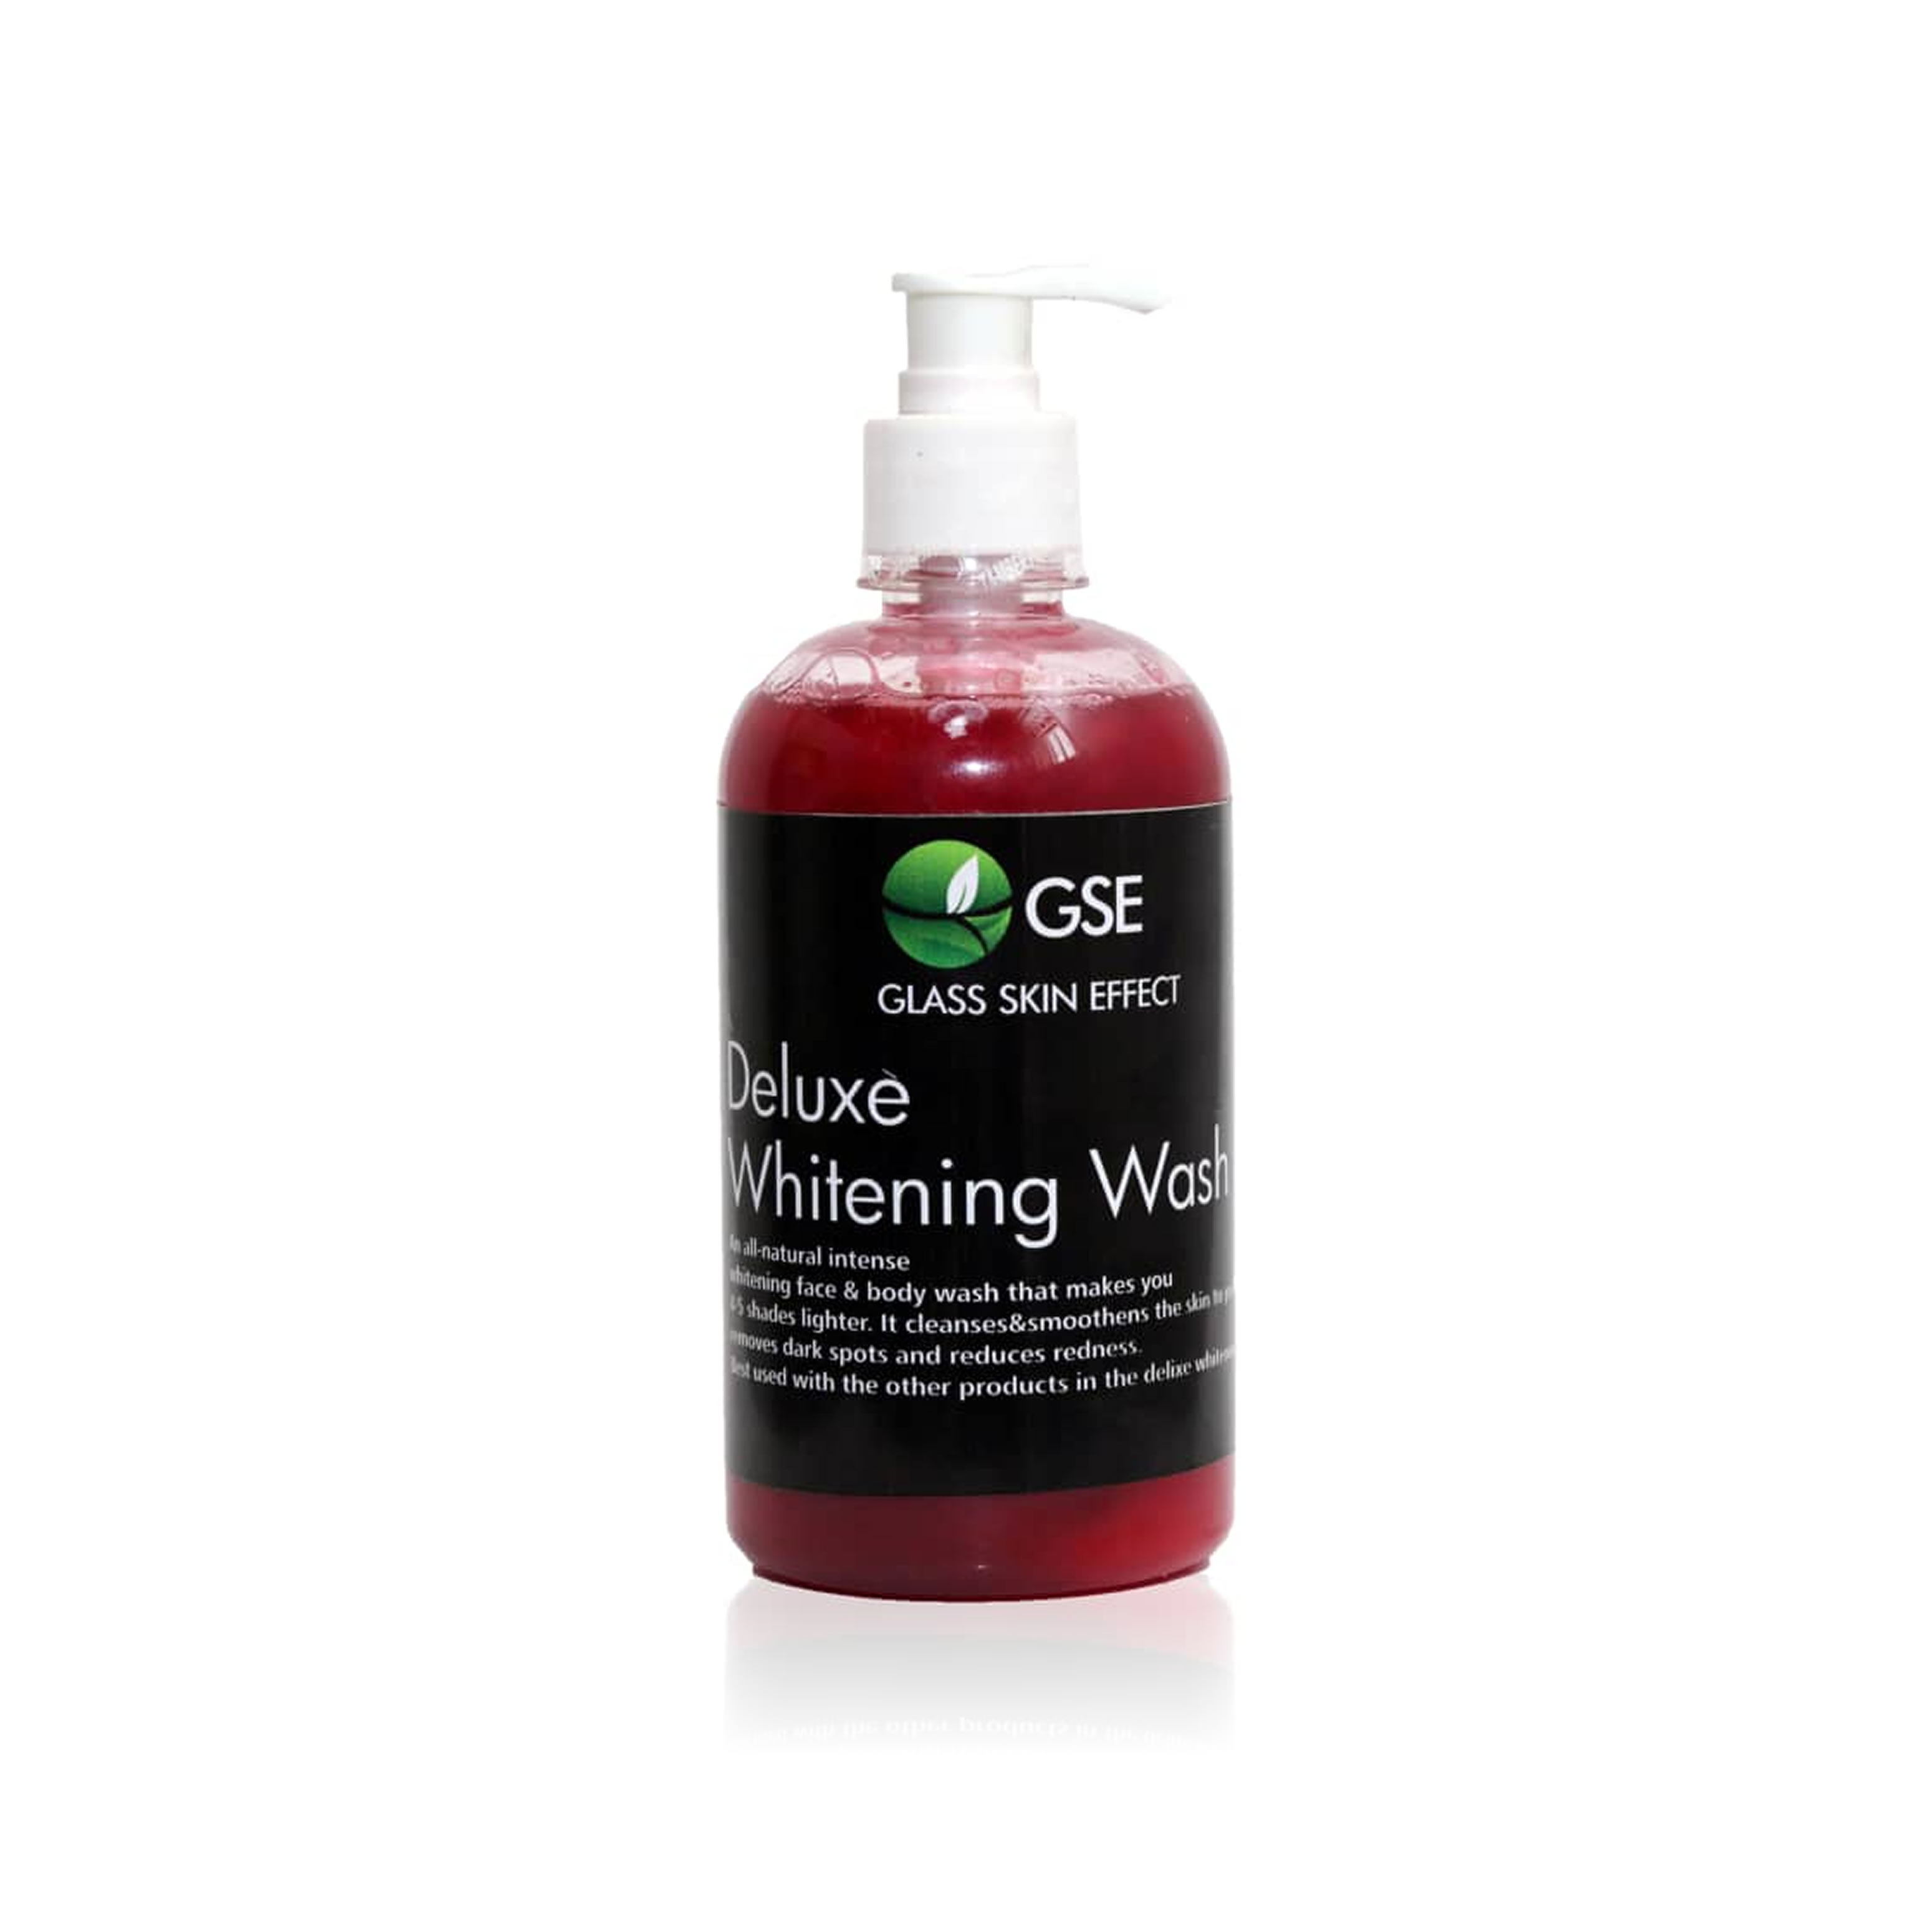 Deluxe Whitening Wash